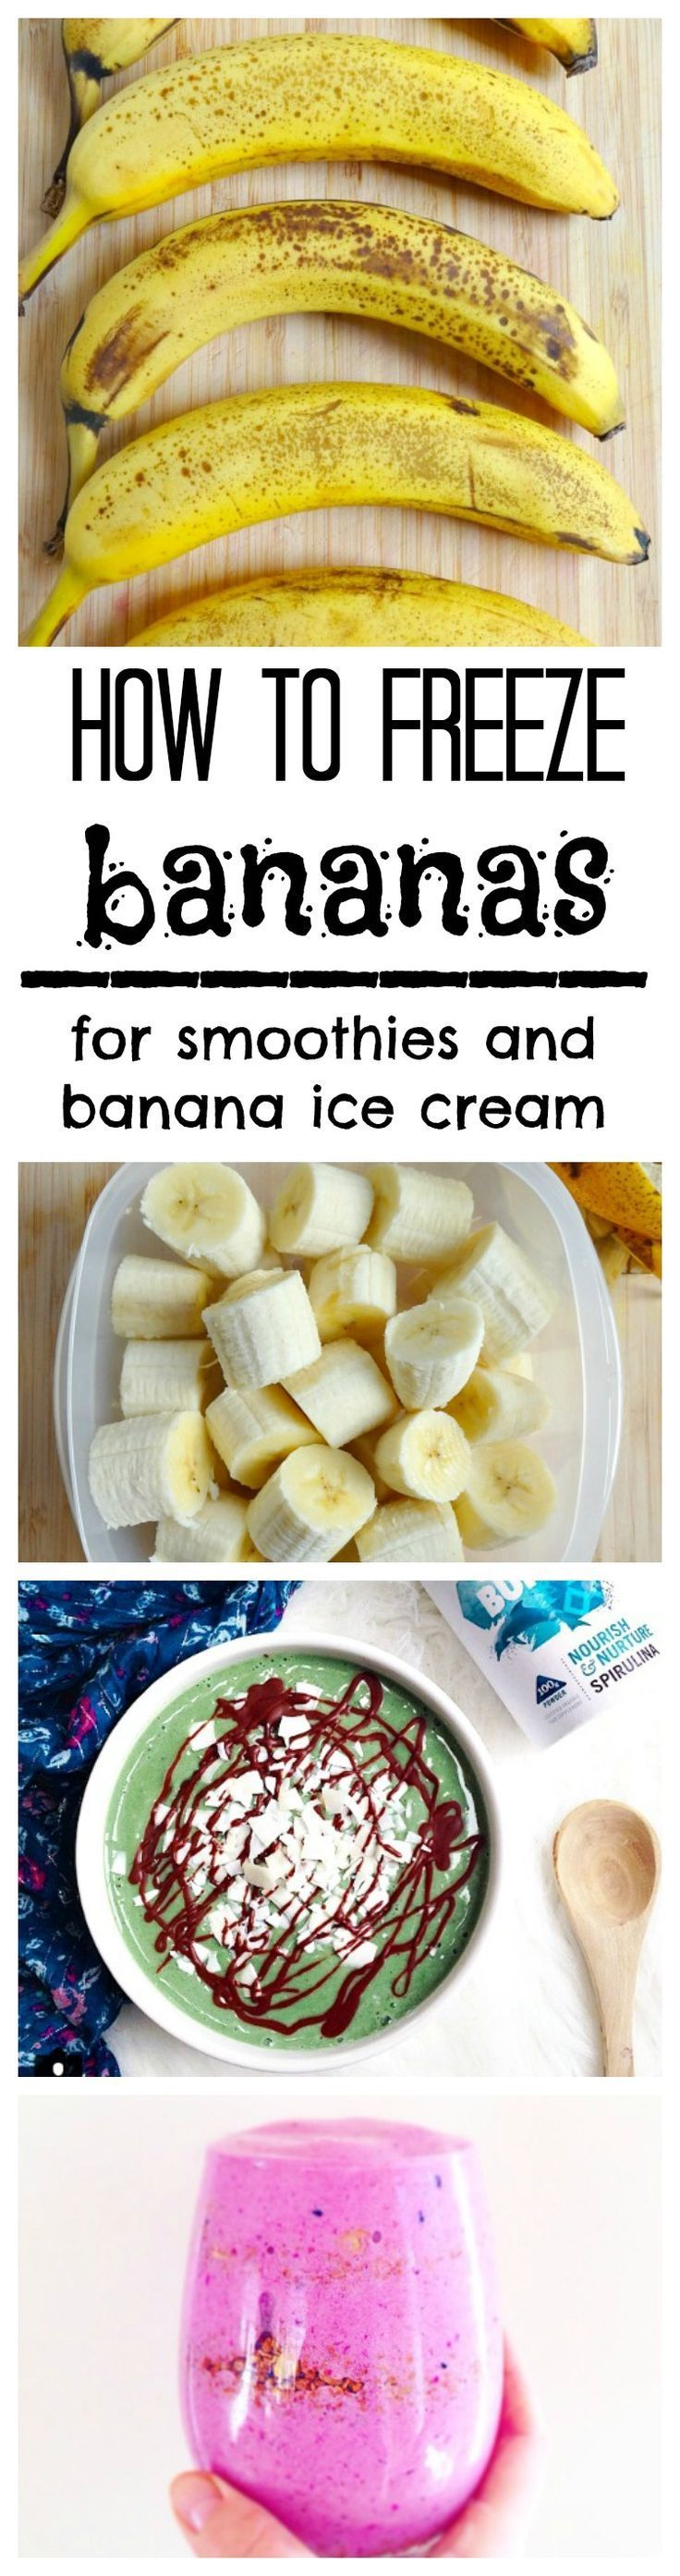 How To Freeze Bananas for smoothies, smoothie bowls and banana nice cream!